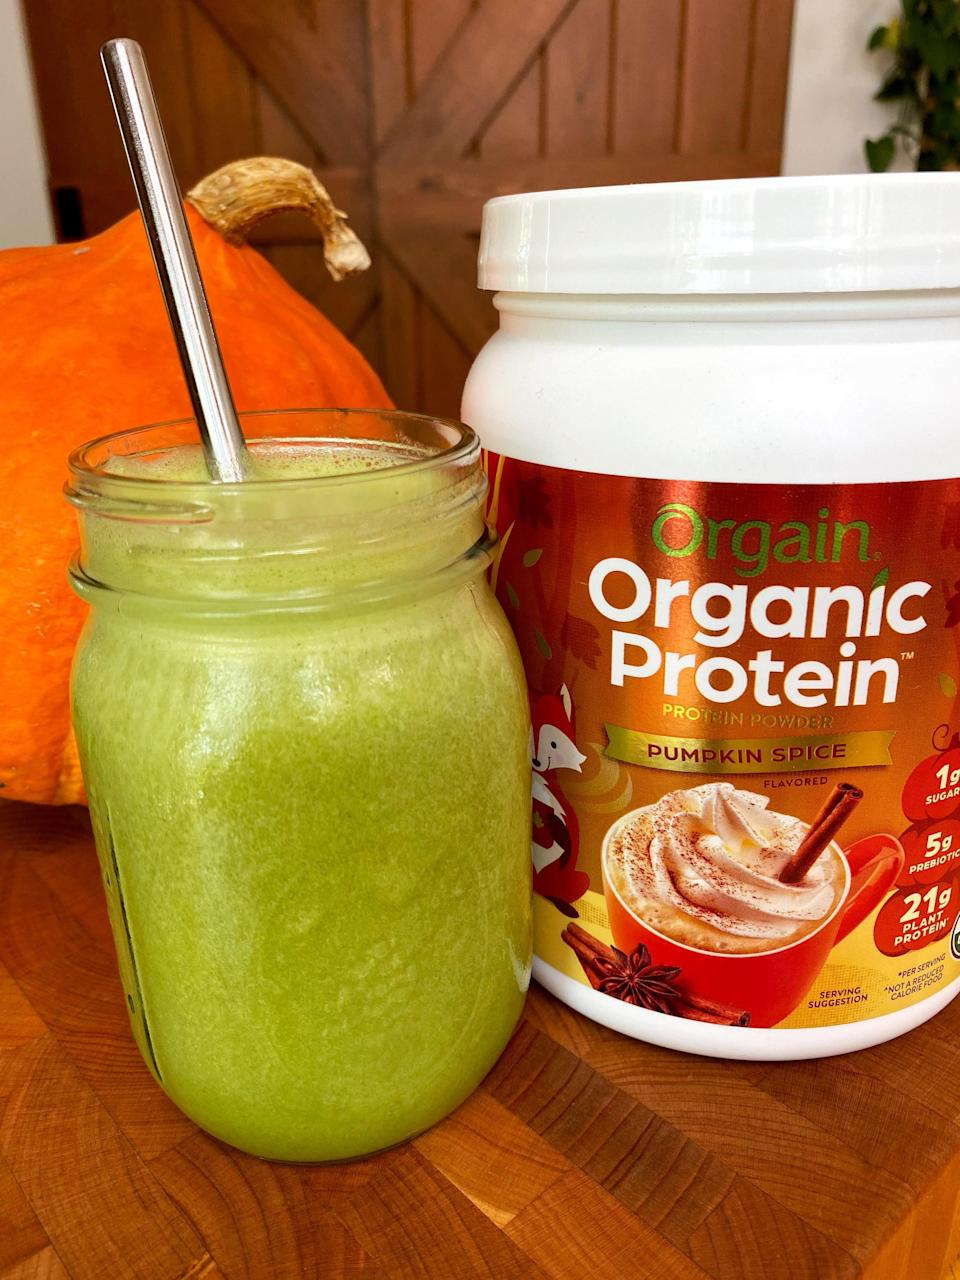 """<p>The first thing I made using Orgain Pumpkin Spice Protein Powder was a simple green smoothie, so I could really get a sense of the flavor. I used half a banana to sweeten it, but the protein powder was sweet enough. As I expected, it had a warm, perfectly spiced, fall flavor with an oh-so-creamy texture that I love. </p> <p>Here are two smoothie recipes you can use to try out this Orgain Pumpkin Spice Protein Powder:</p> <ul> <li><a href=""""https://www.popsugar.com/fitness/pumpkin-protein-smoothie-recipe-44075463"""" class=""""link rapid-noclick-resp"""" rel=""""nofollow noopener"""" target=""""_blank"""" data-ylk=""""slk:Pumpkin protein smoothie"""">Pumpkin protein smoothie</a></li> <li><a href=""""https://www.popsugar.com/fitness/Pumpkin-Spice-Latte-Protein-Smoothie-44075740"""" class=""""link rapid-noclick-resp"""" rel=""""nofollow noopener"""" target=""""_blank"""" data-ylk=""""slk:Pumpkin spice latte protein smoothie"""">Pumpkin spice latte protein smoothie</a></li> </ul>"""